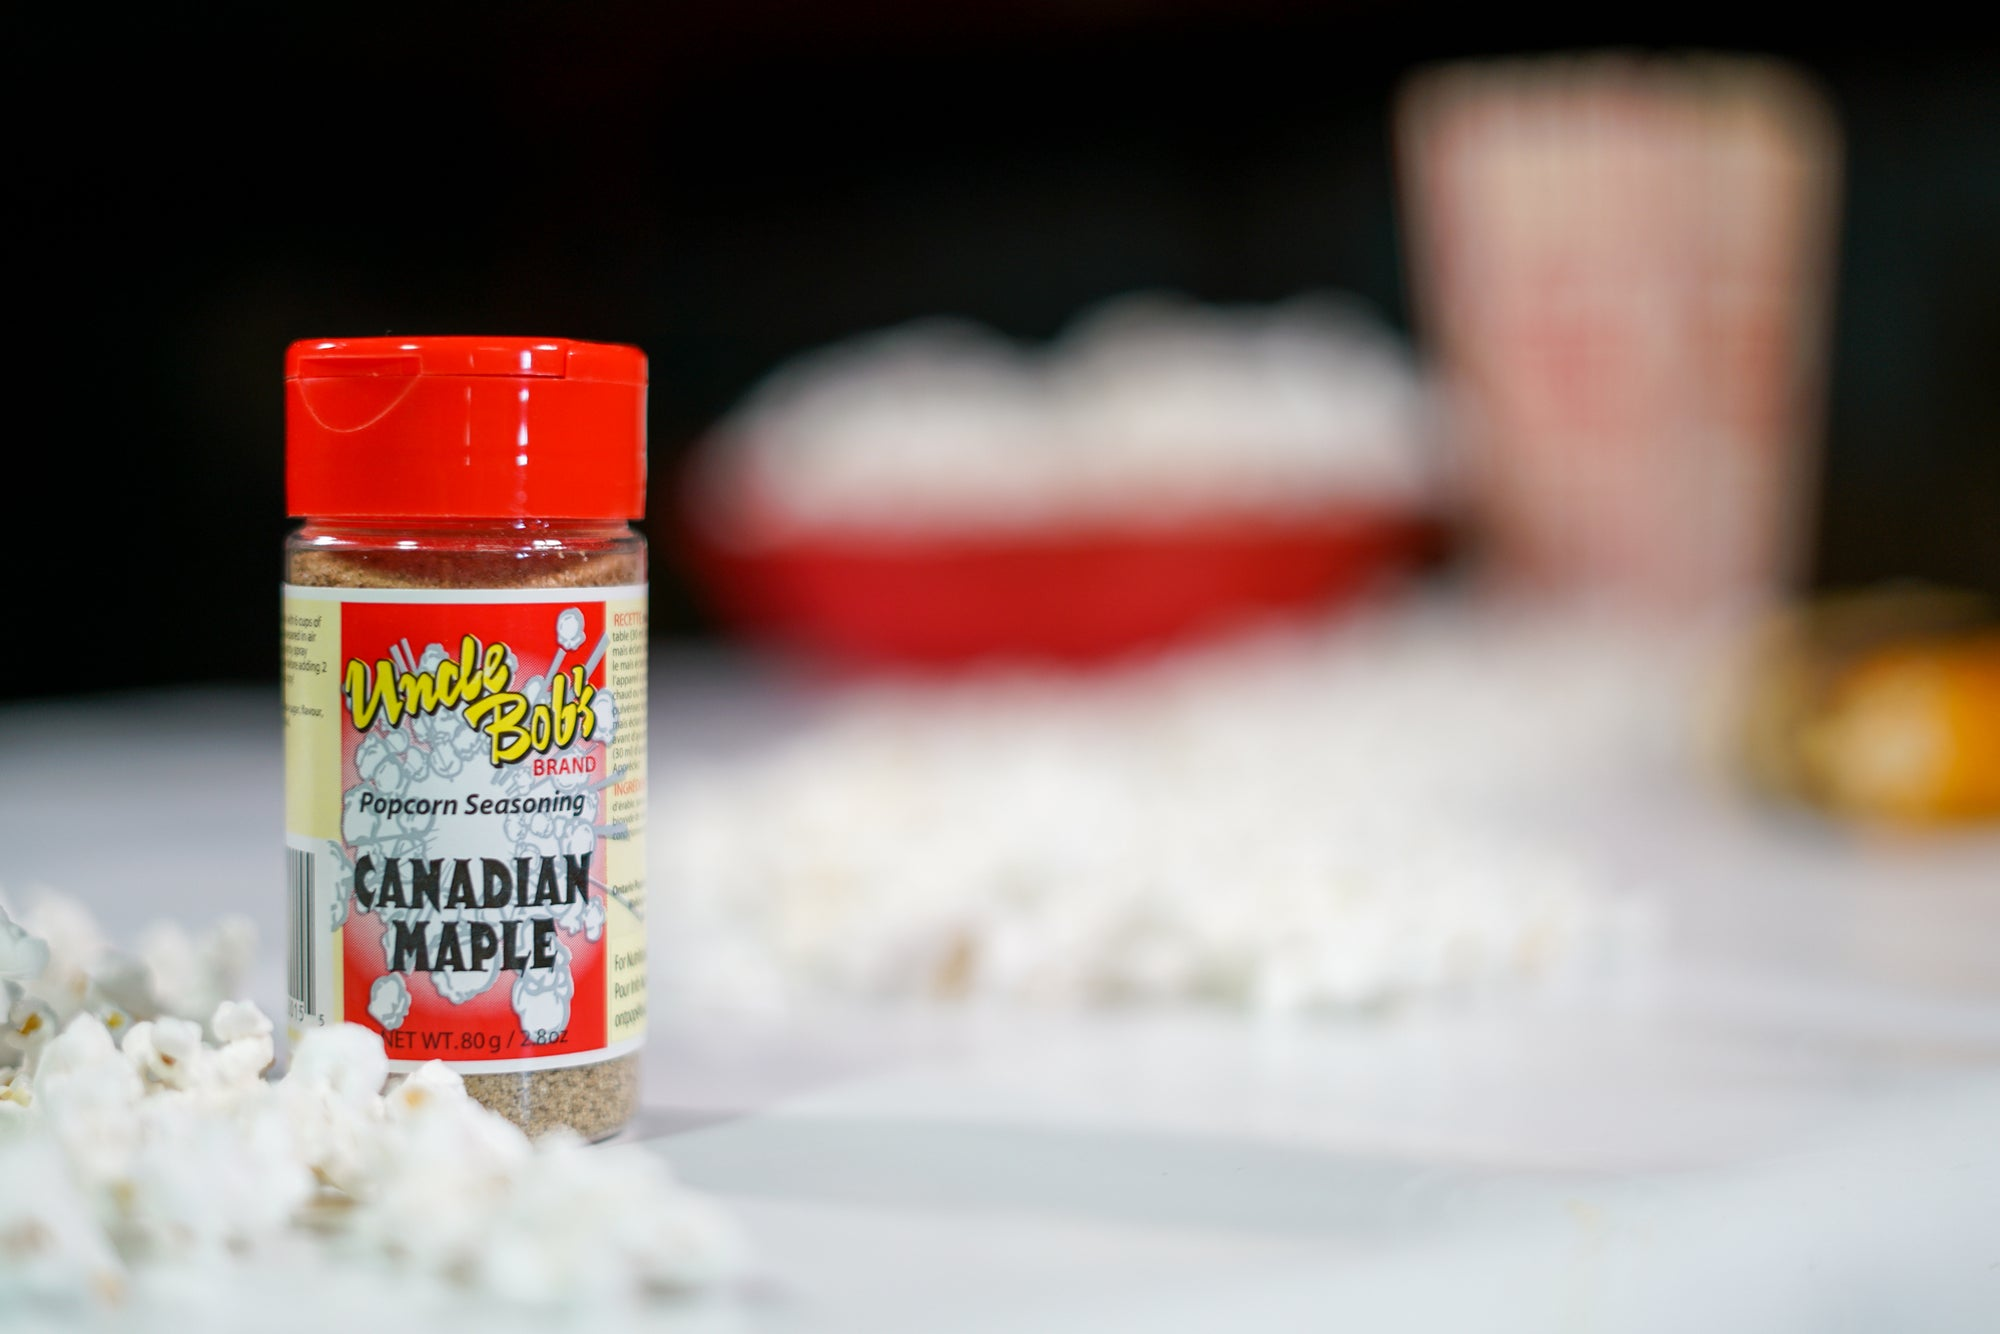 80 grams of Canadian Maple Popcorn Seasoning. Processed and packaged in Canada.